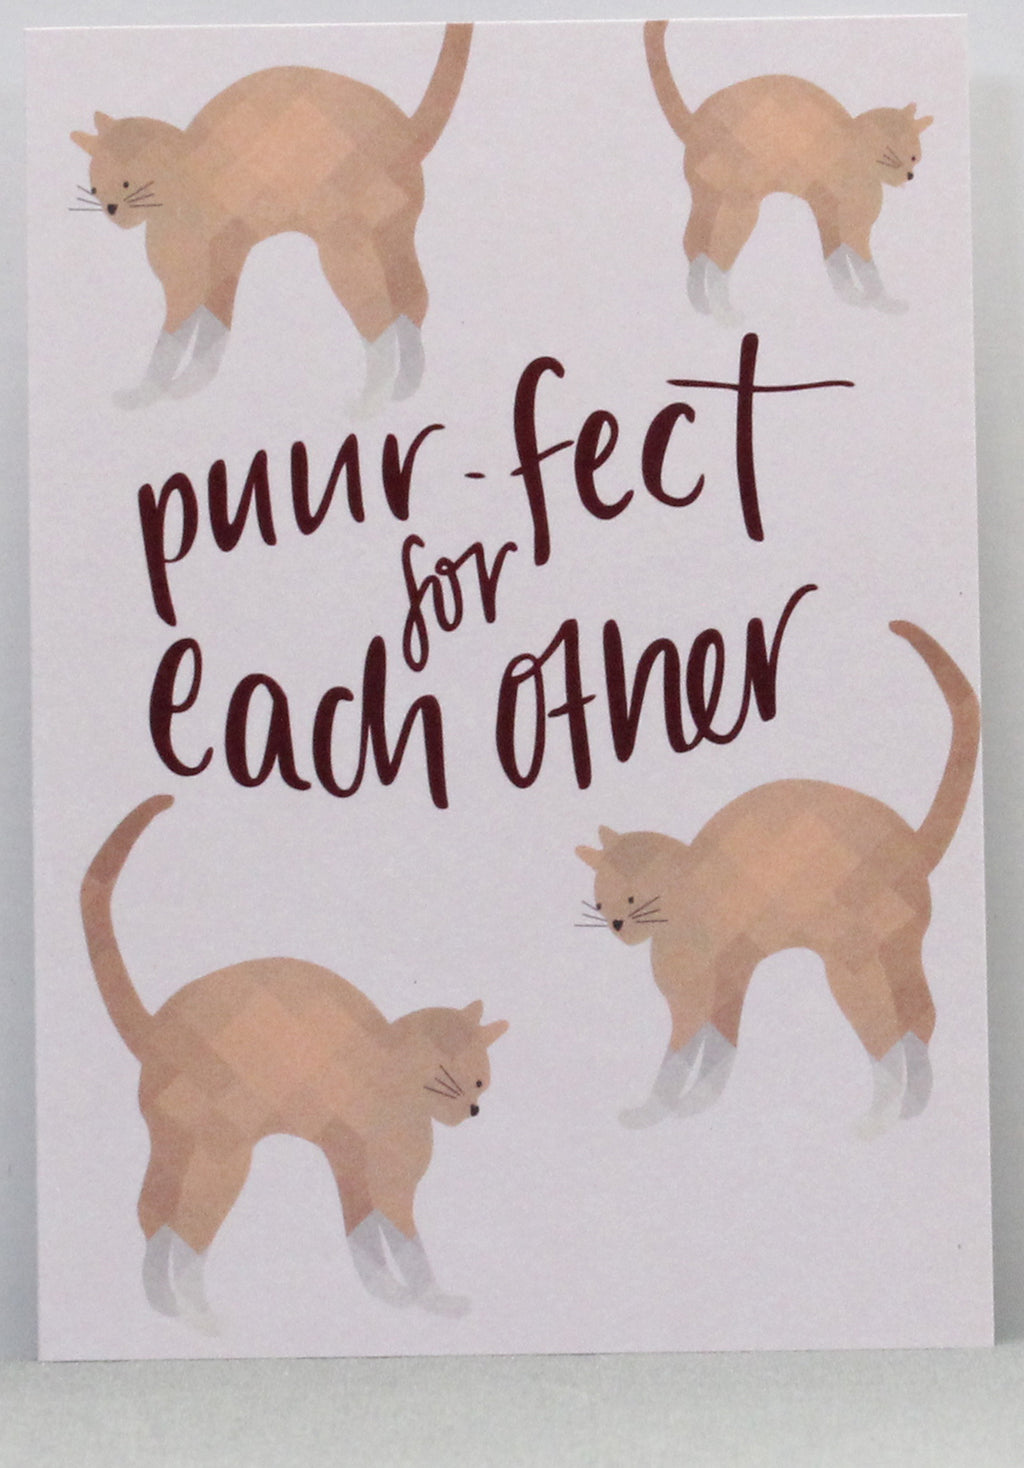 Puur-fect For Each Other Greeting Card